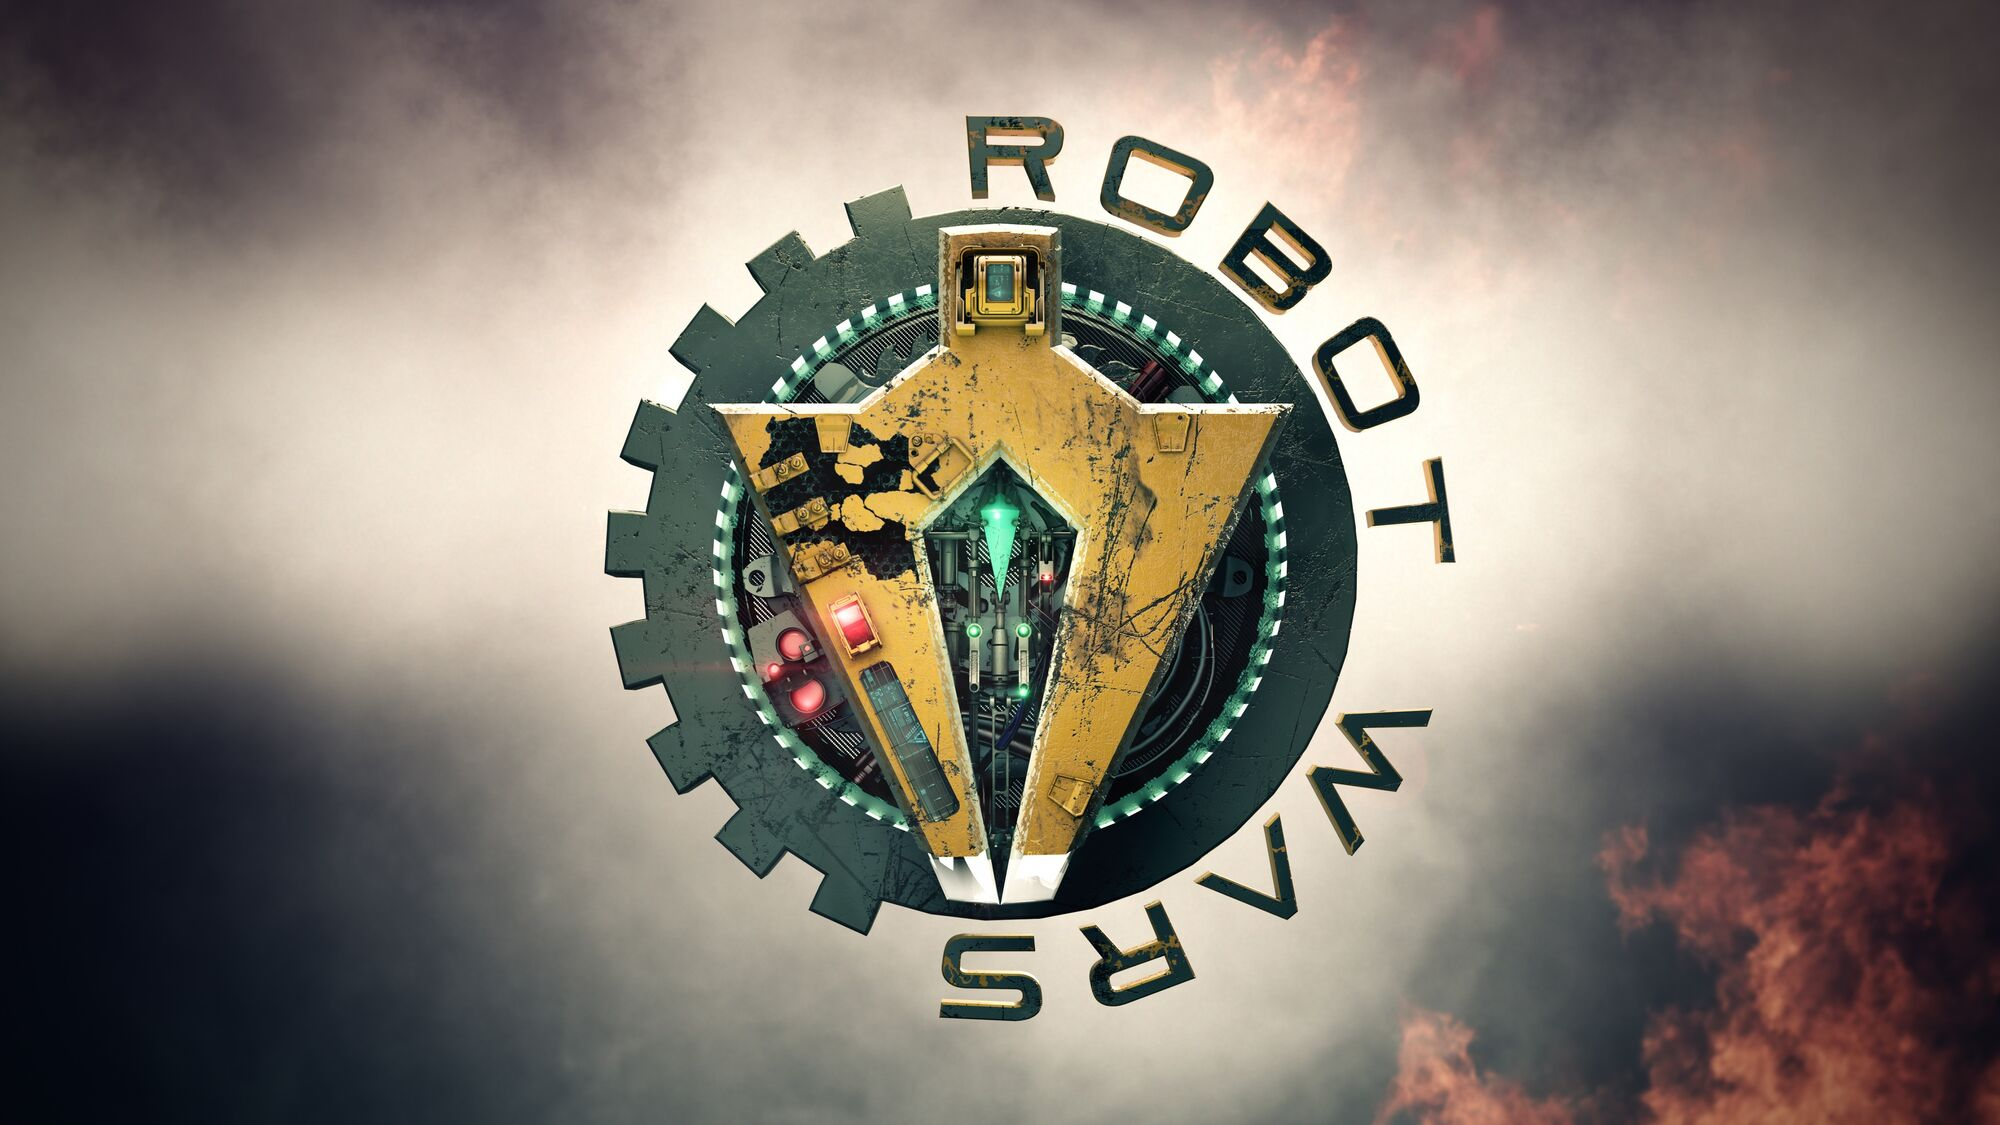 Robot Wars Series 9 Heat 5 Wiki Fandom Powered By Wikia Electrical Power Sources For Mobile Robots Smashing Robotics